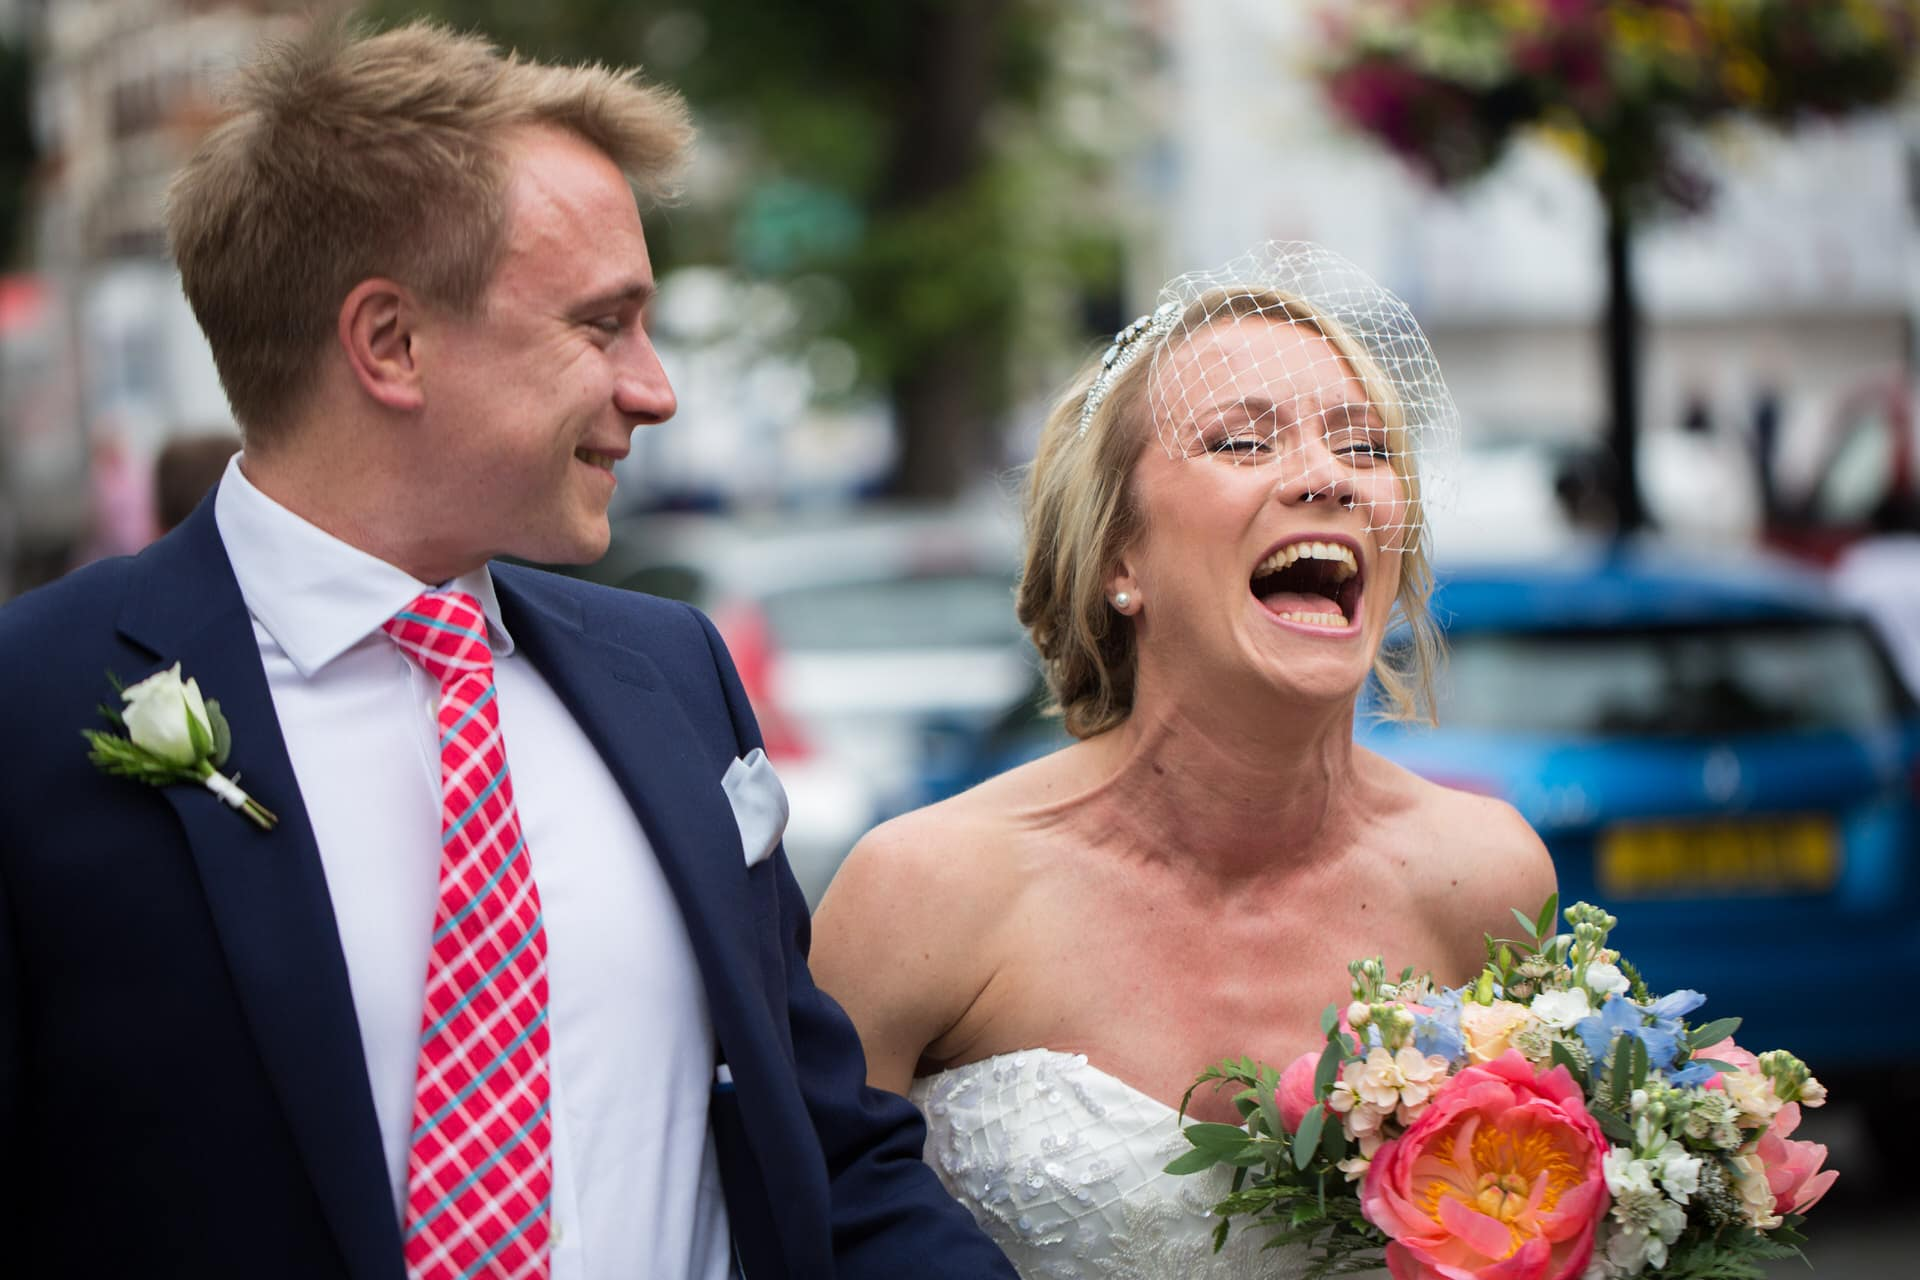 laughing bride and brother